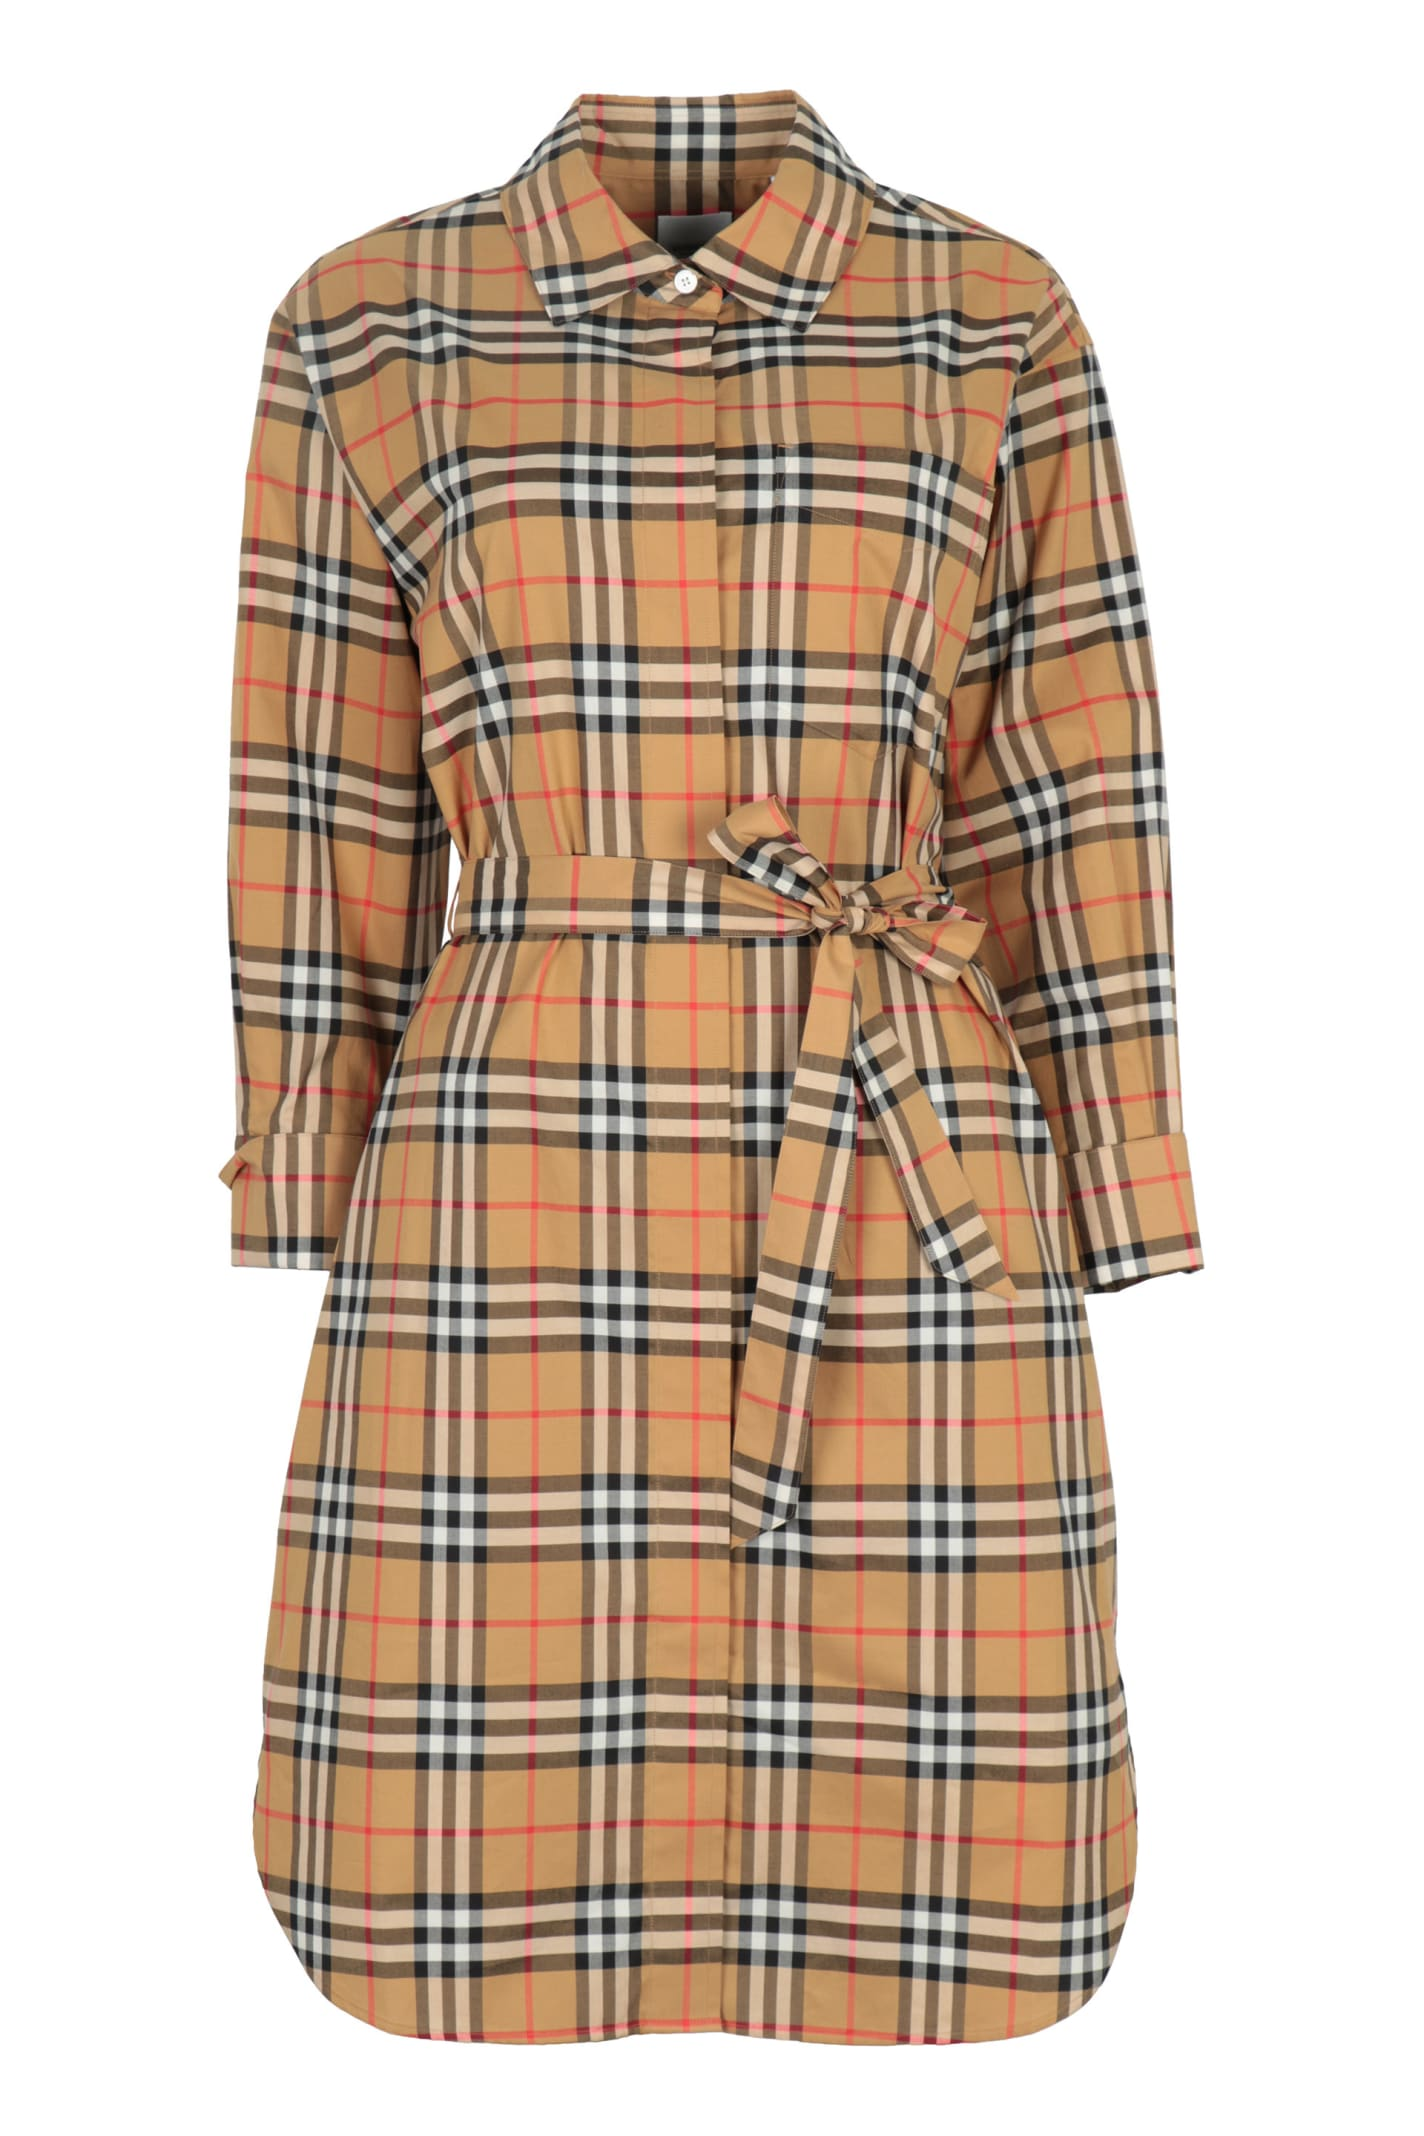 Buy Burberry Vintage Check Cotton Shirtdress online, shop Burberry with free shipping